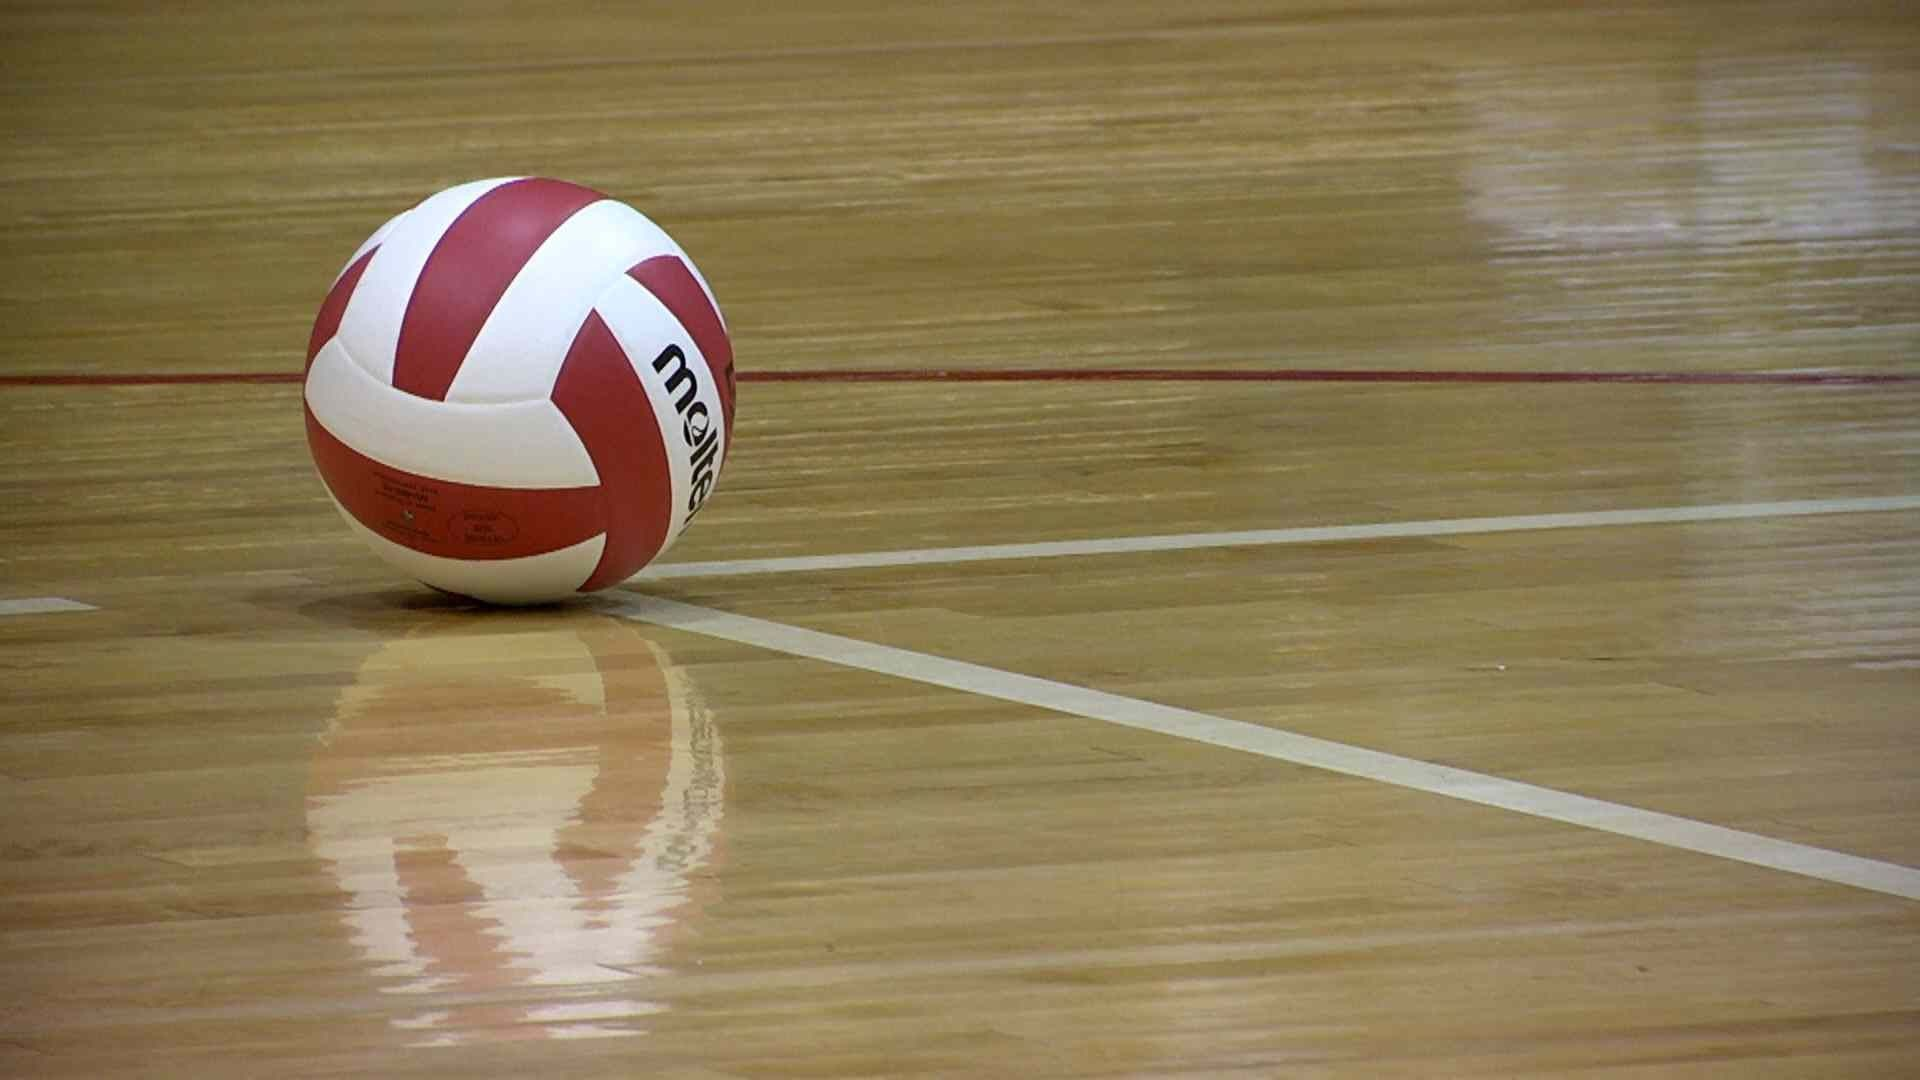 Volleyball Wallpaper Ball Volleyball Wallpaper Volleyball Backgrounds Volleyball